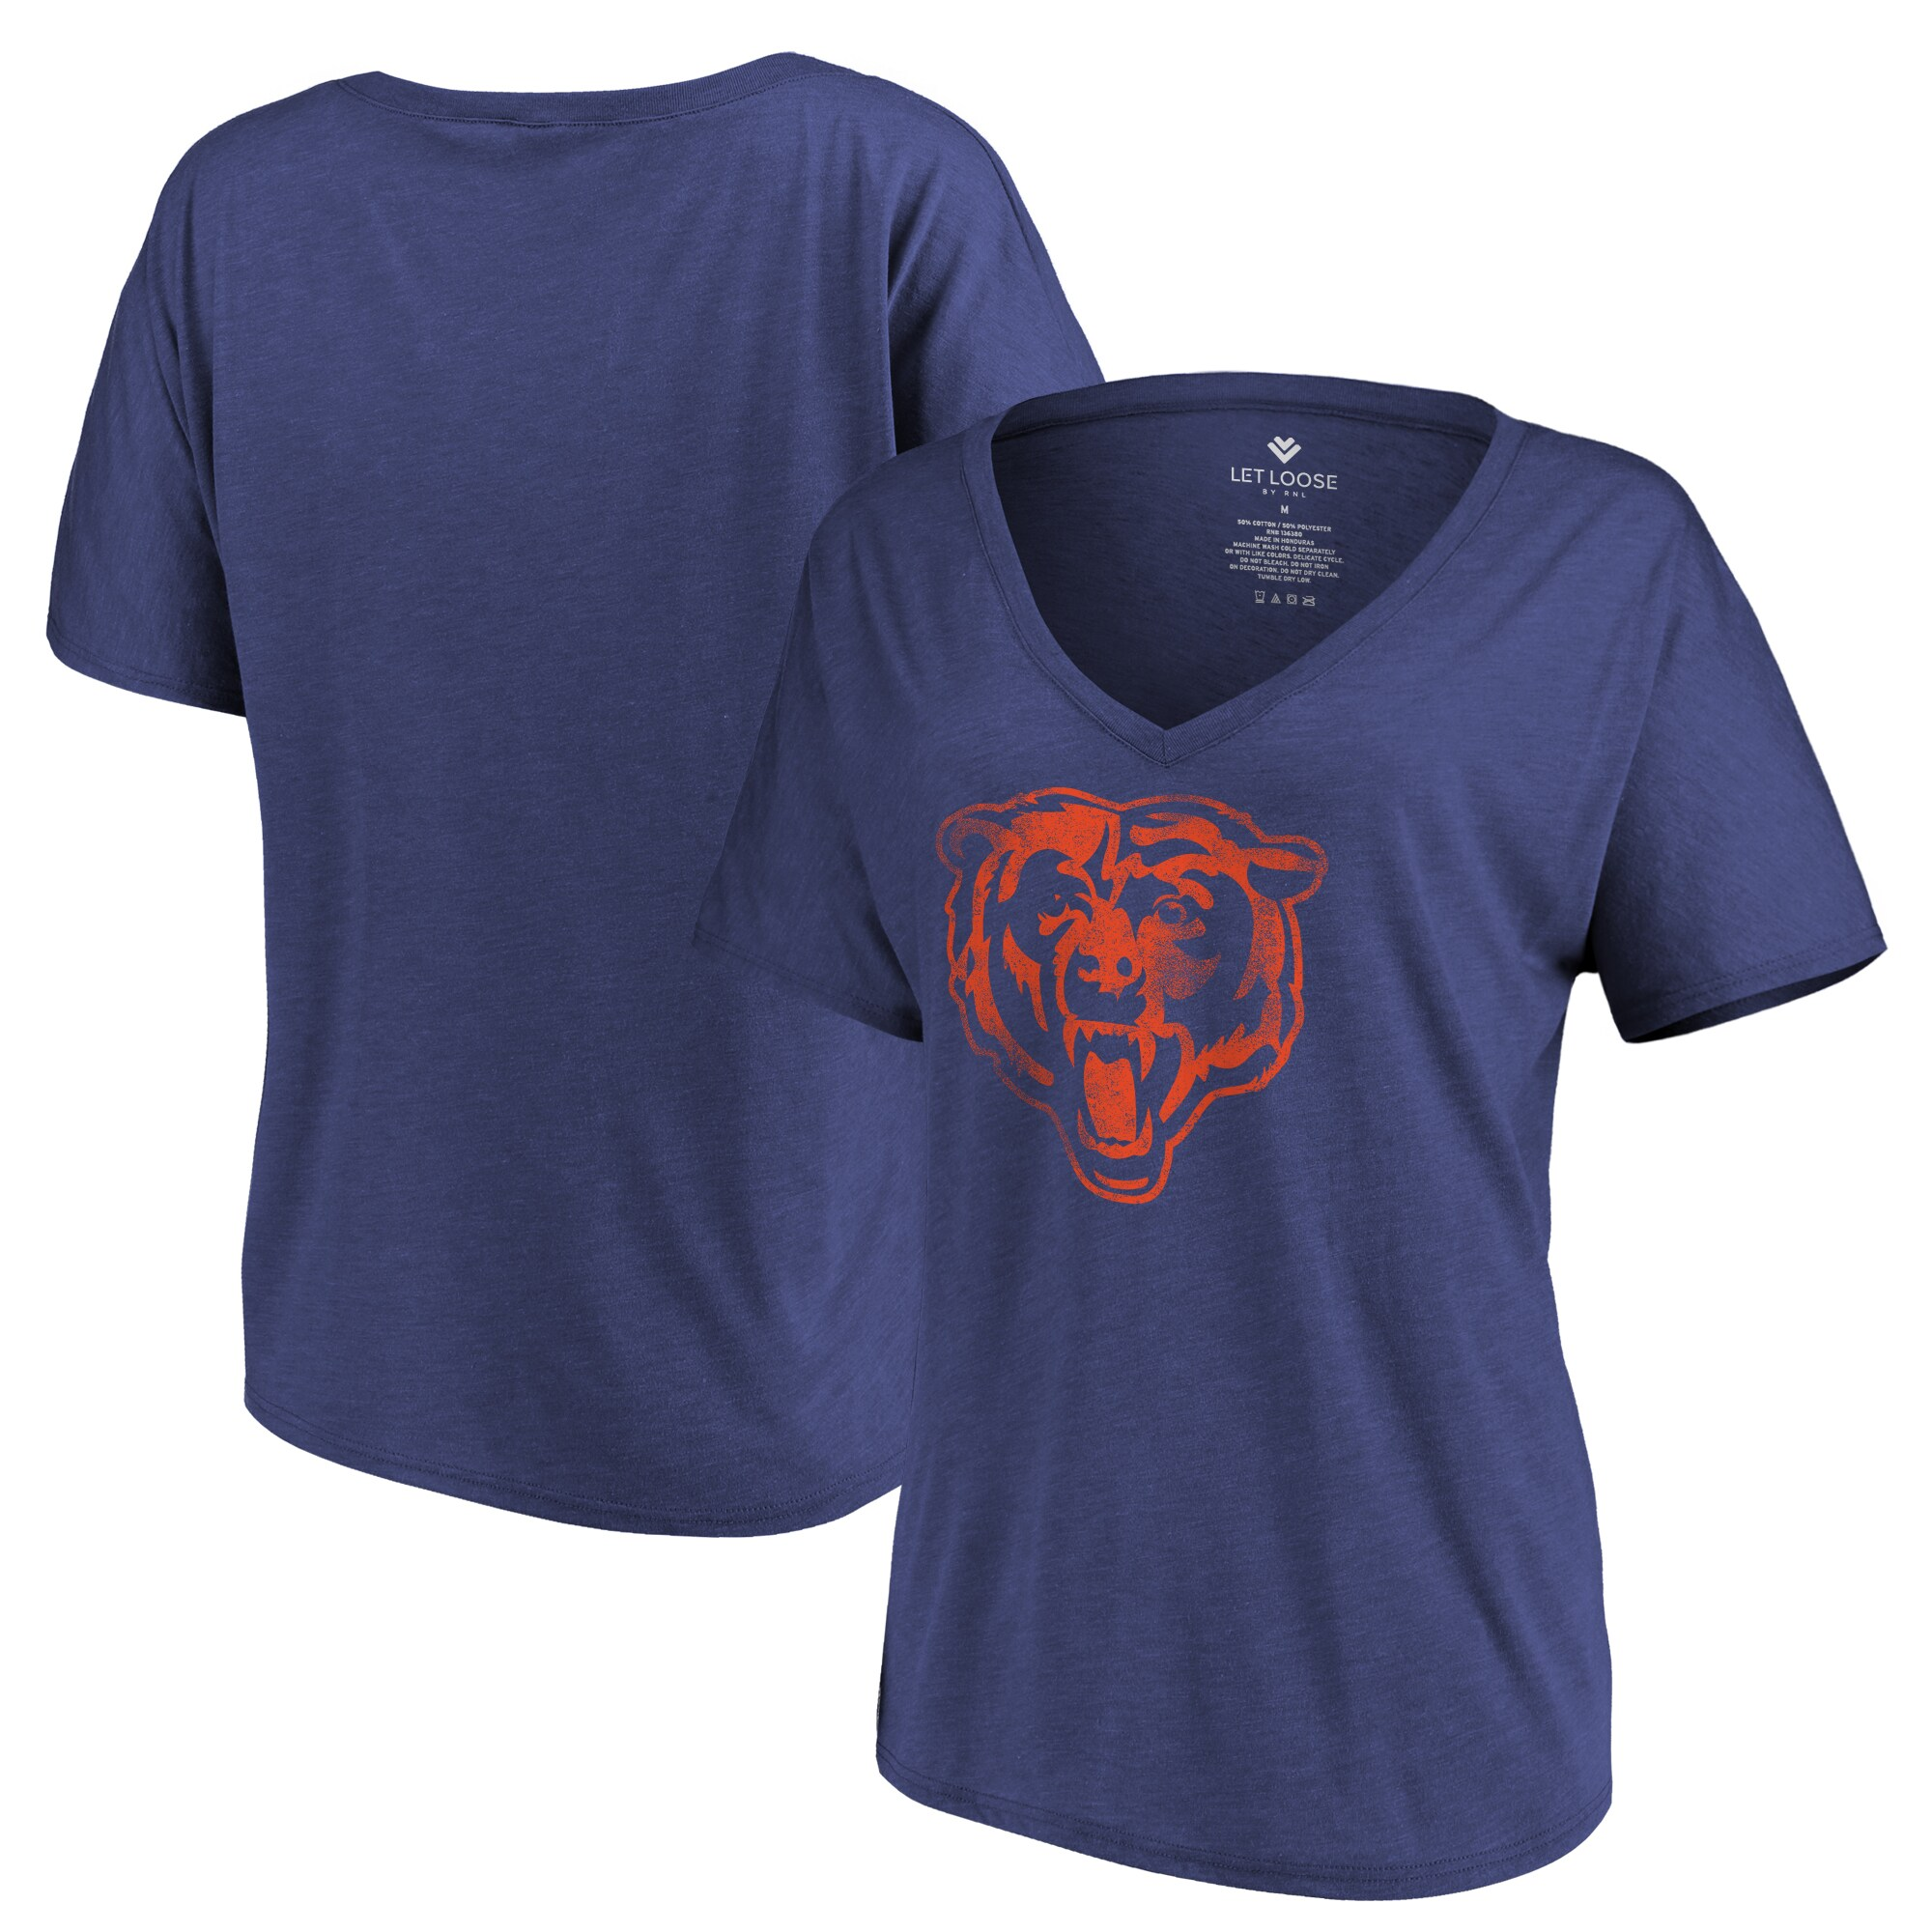 Chicago Bears Let Loose by RNL Women's Distressed Primary V-Neck T-Shirt - Navy